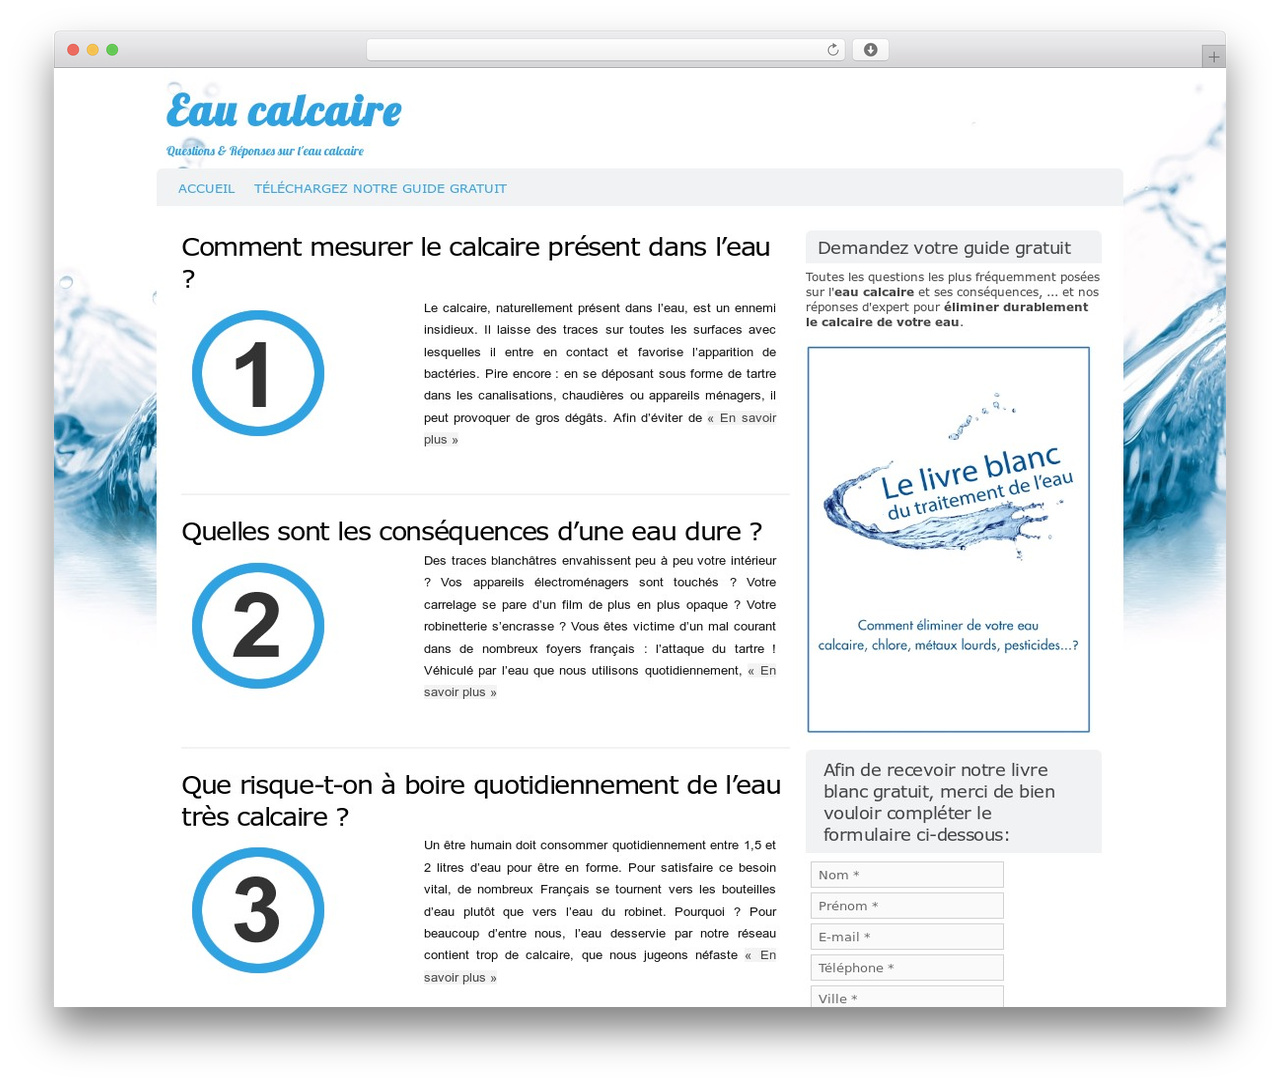 Codium WordPress Template Free Download By Henri Labarre Eau - O que é carrelage